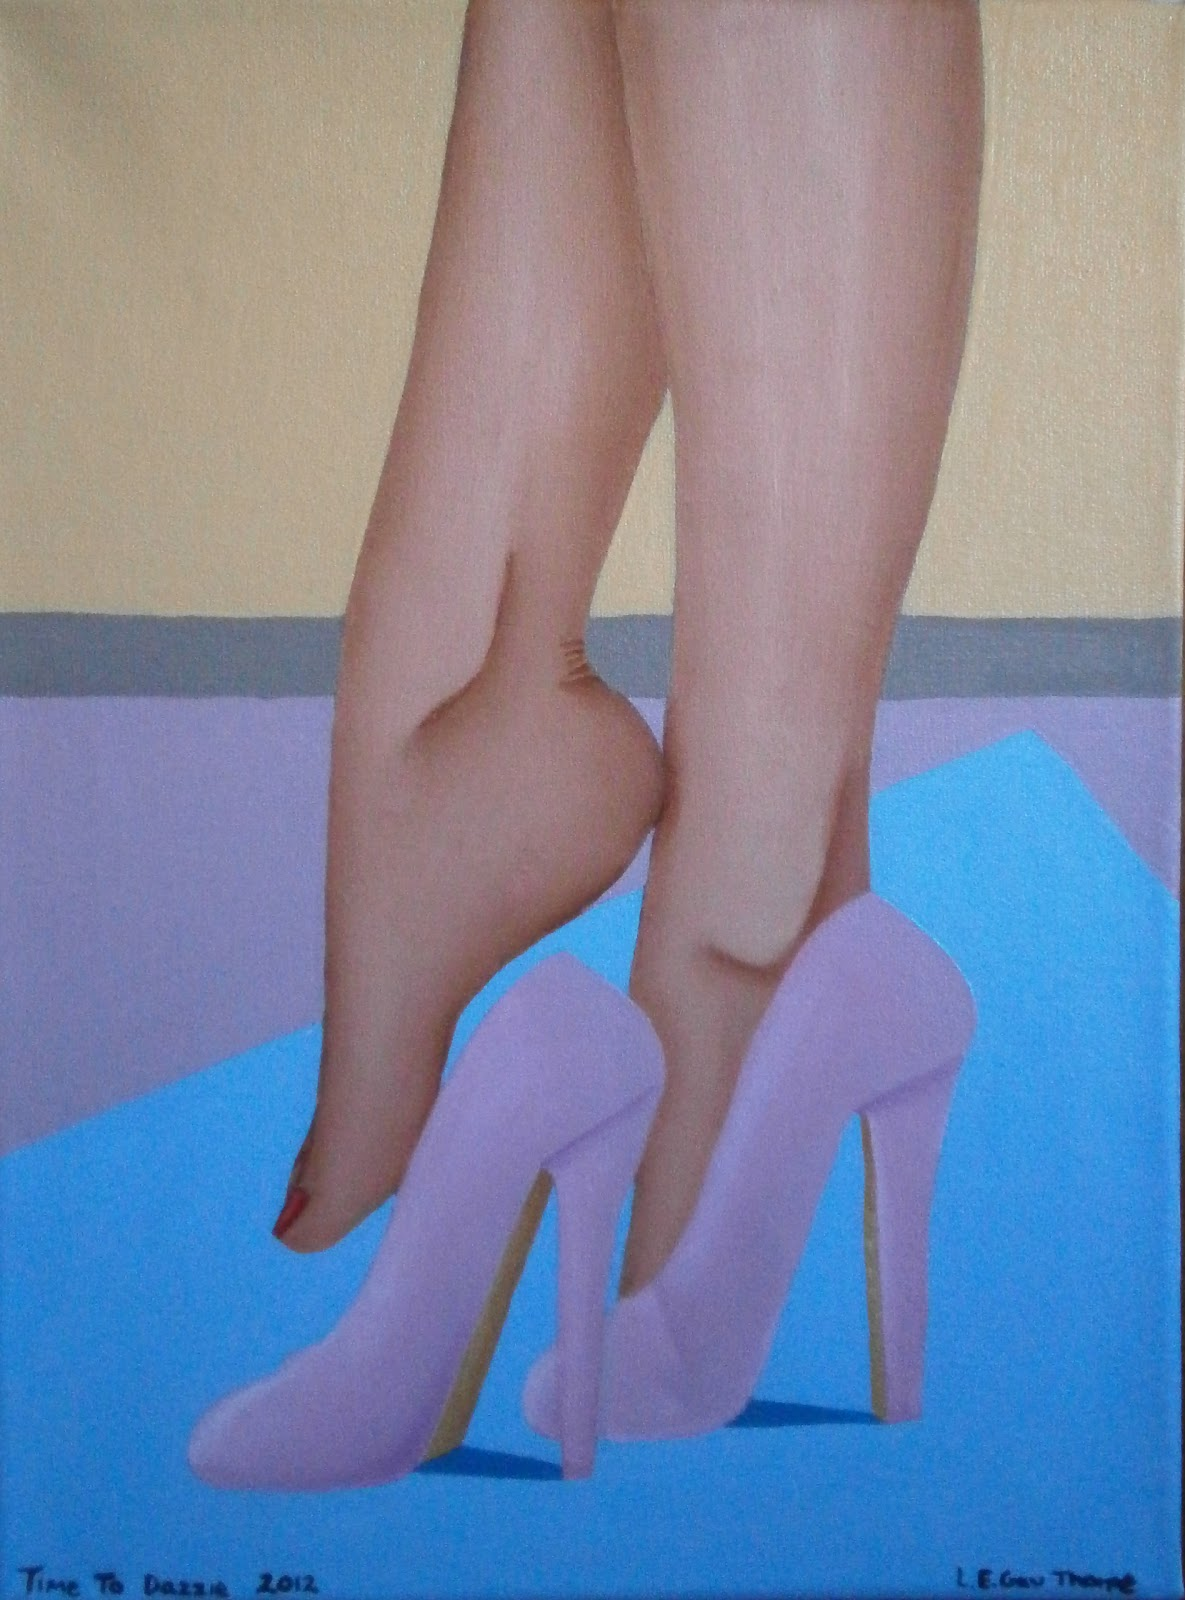 A woman putting on some very high pink heels